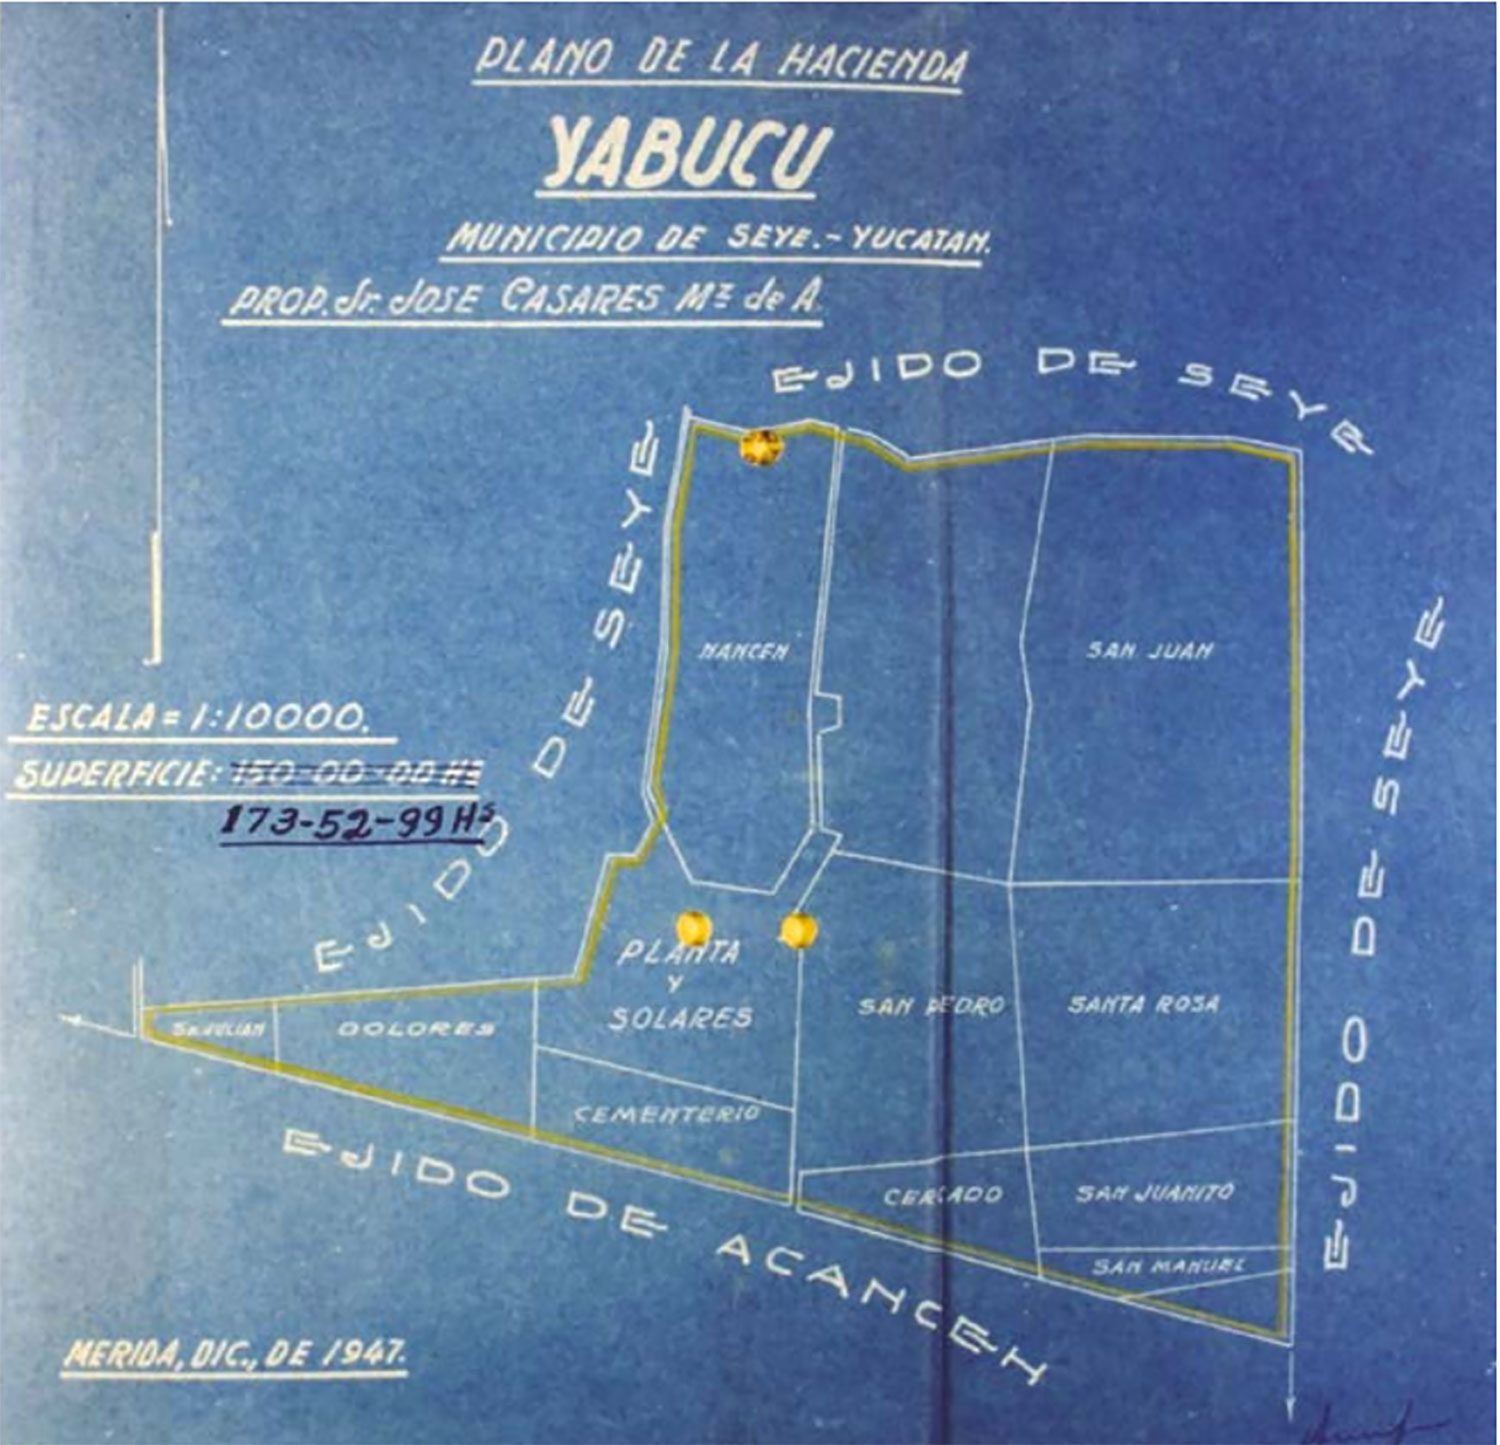 Yabucú plan from 1947. Source:  yabucu.mx .